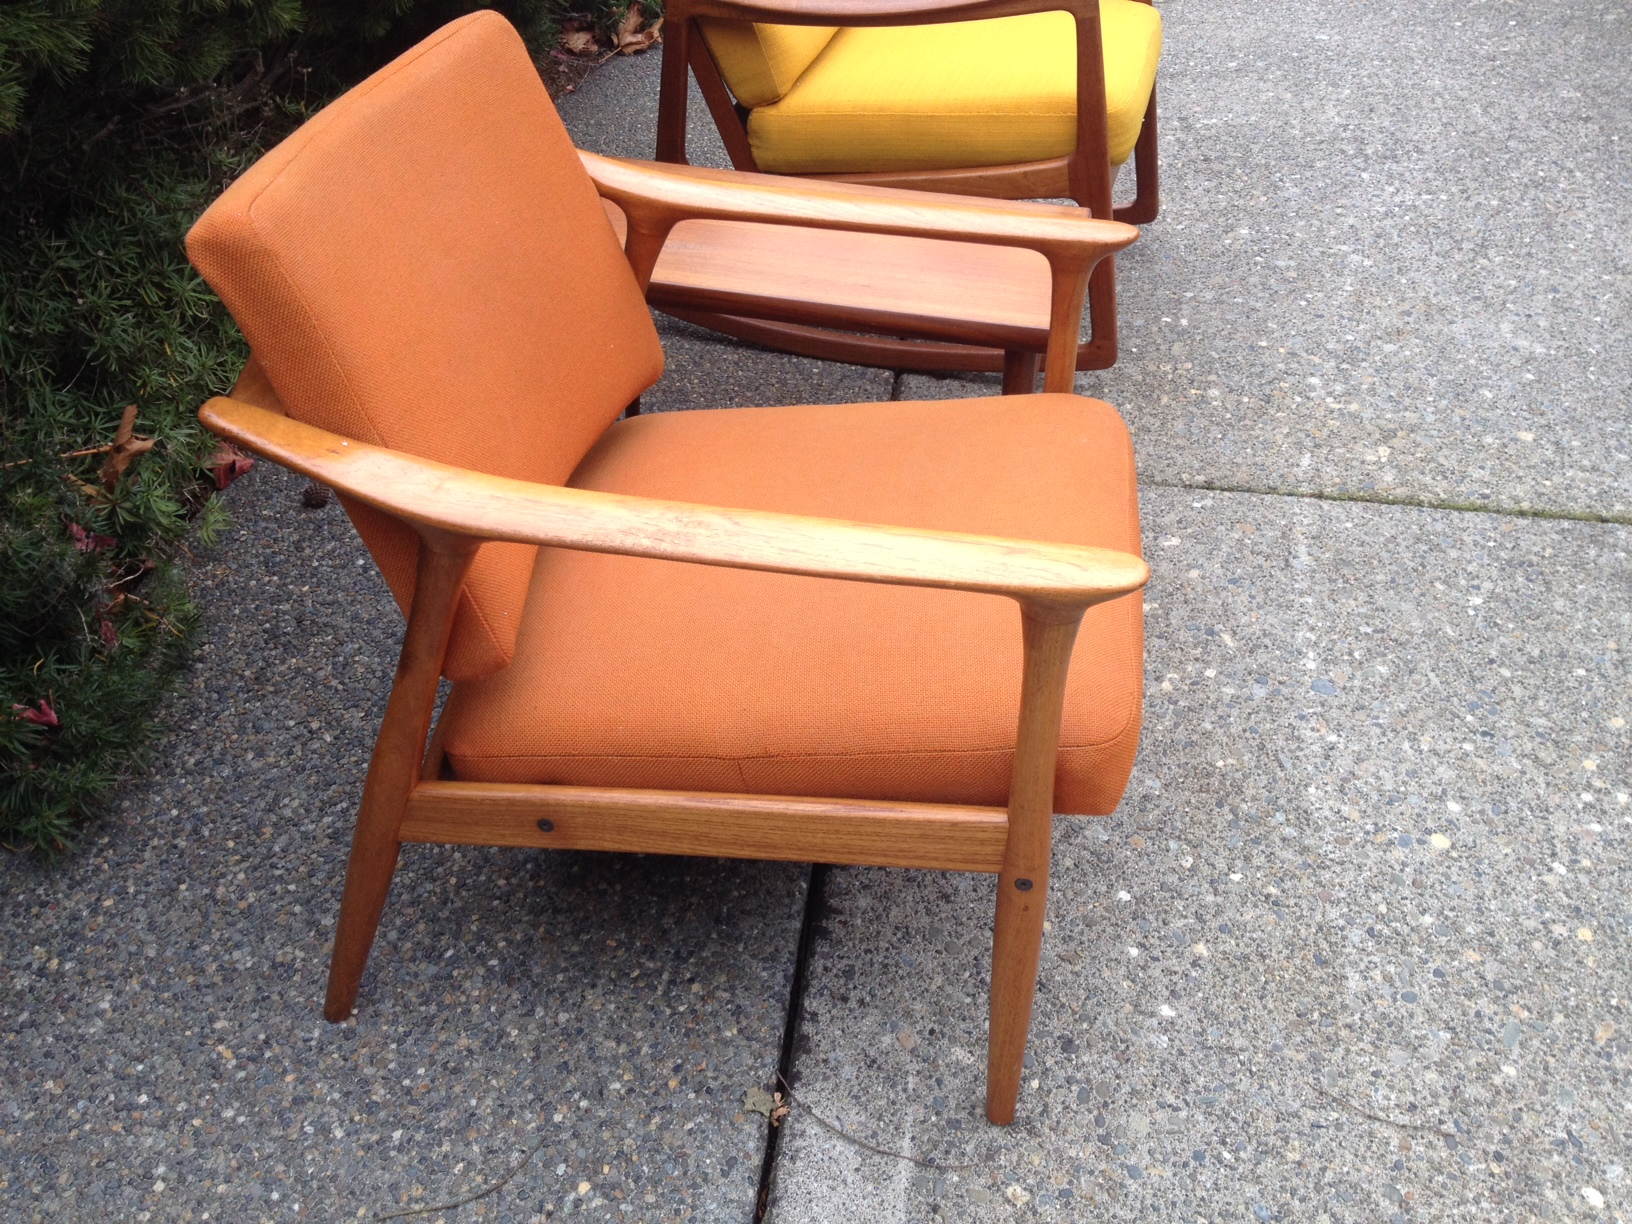 Teak Furniture Retro 2 Chairs And A Table 150 Tacoma Dawhitestboyalive